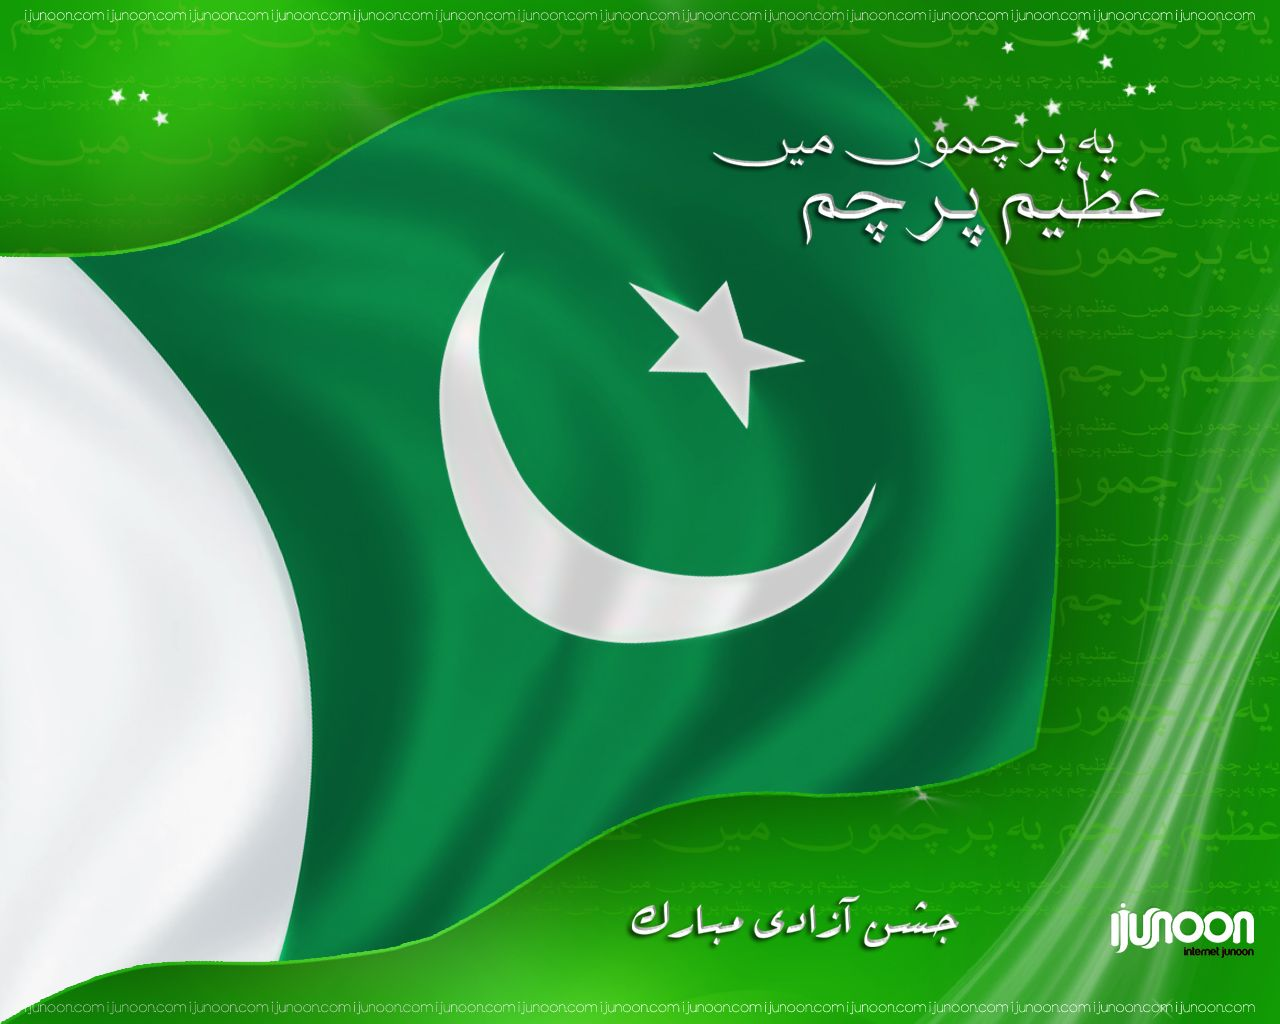 Ye Parchamon Me Azeem Parcham Hamara Parchcham Pakistan Independece Day Wallpaper W Independence Day Wallpaper 14 August Wallpapers Pakistan Independence Day